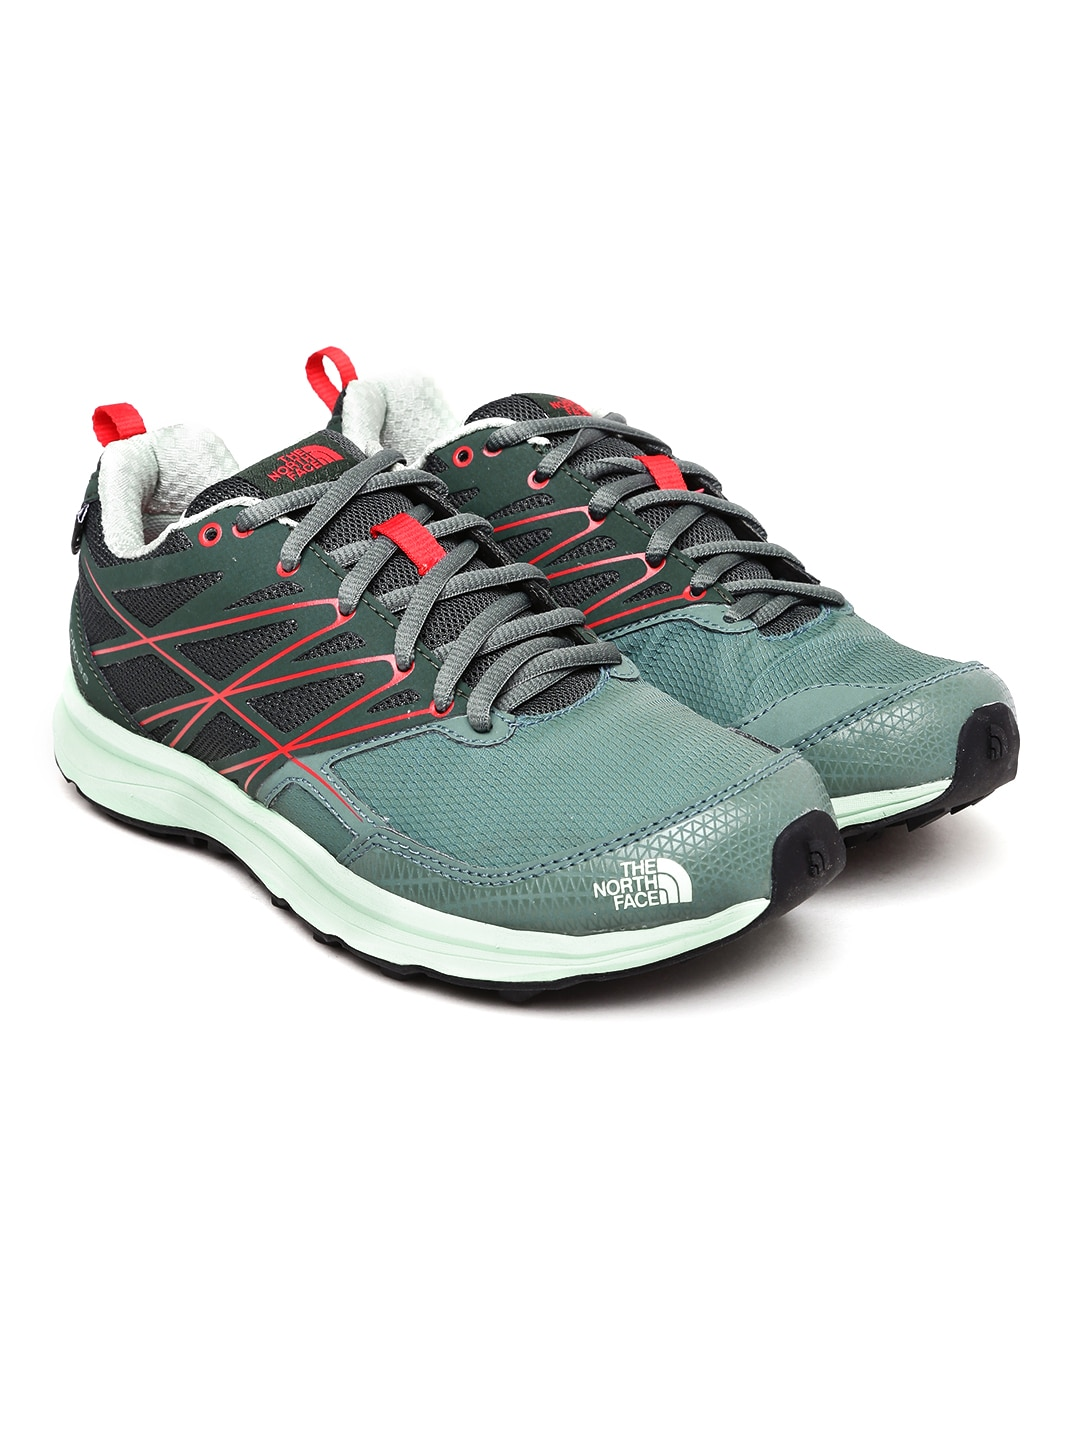 The North Face Women Green Litewave Cross Running Shoes image